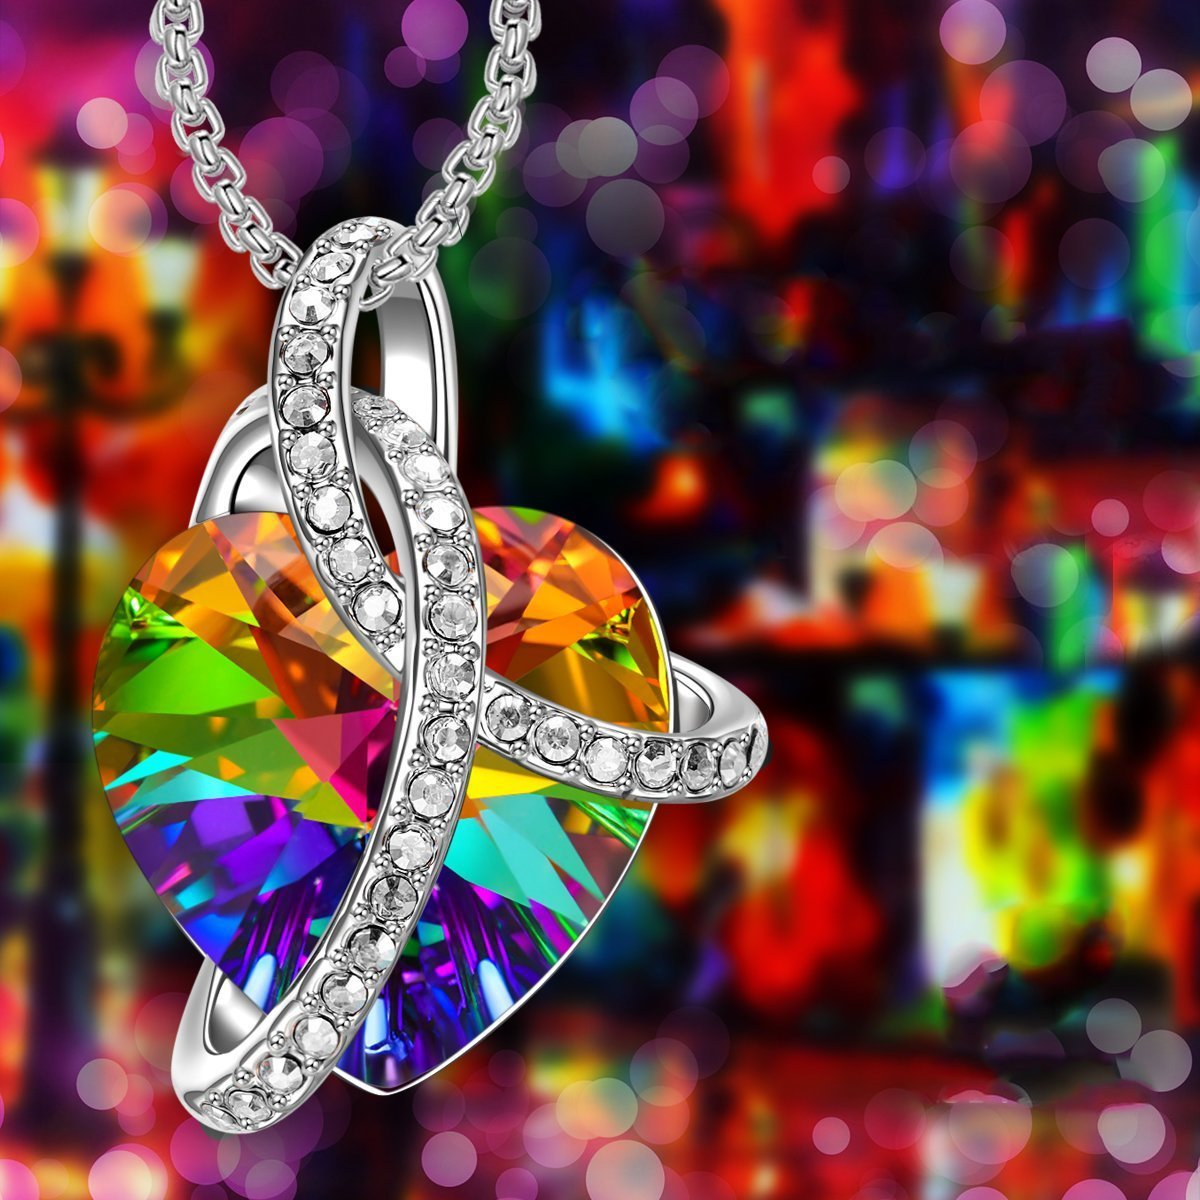 Rainbow Aurora Borealis Swarovski Elements Heart Necklace in 18K White Gold - Voiceopin International: Child Abuse Information & Online Shopping Center